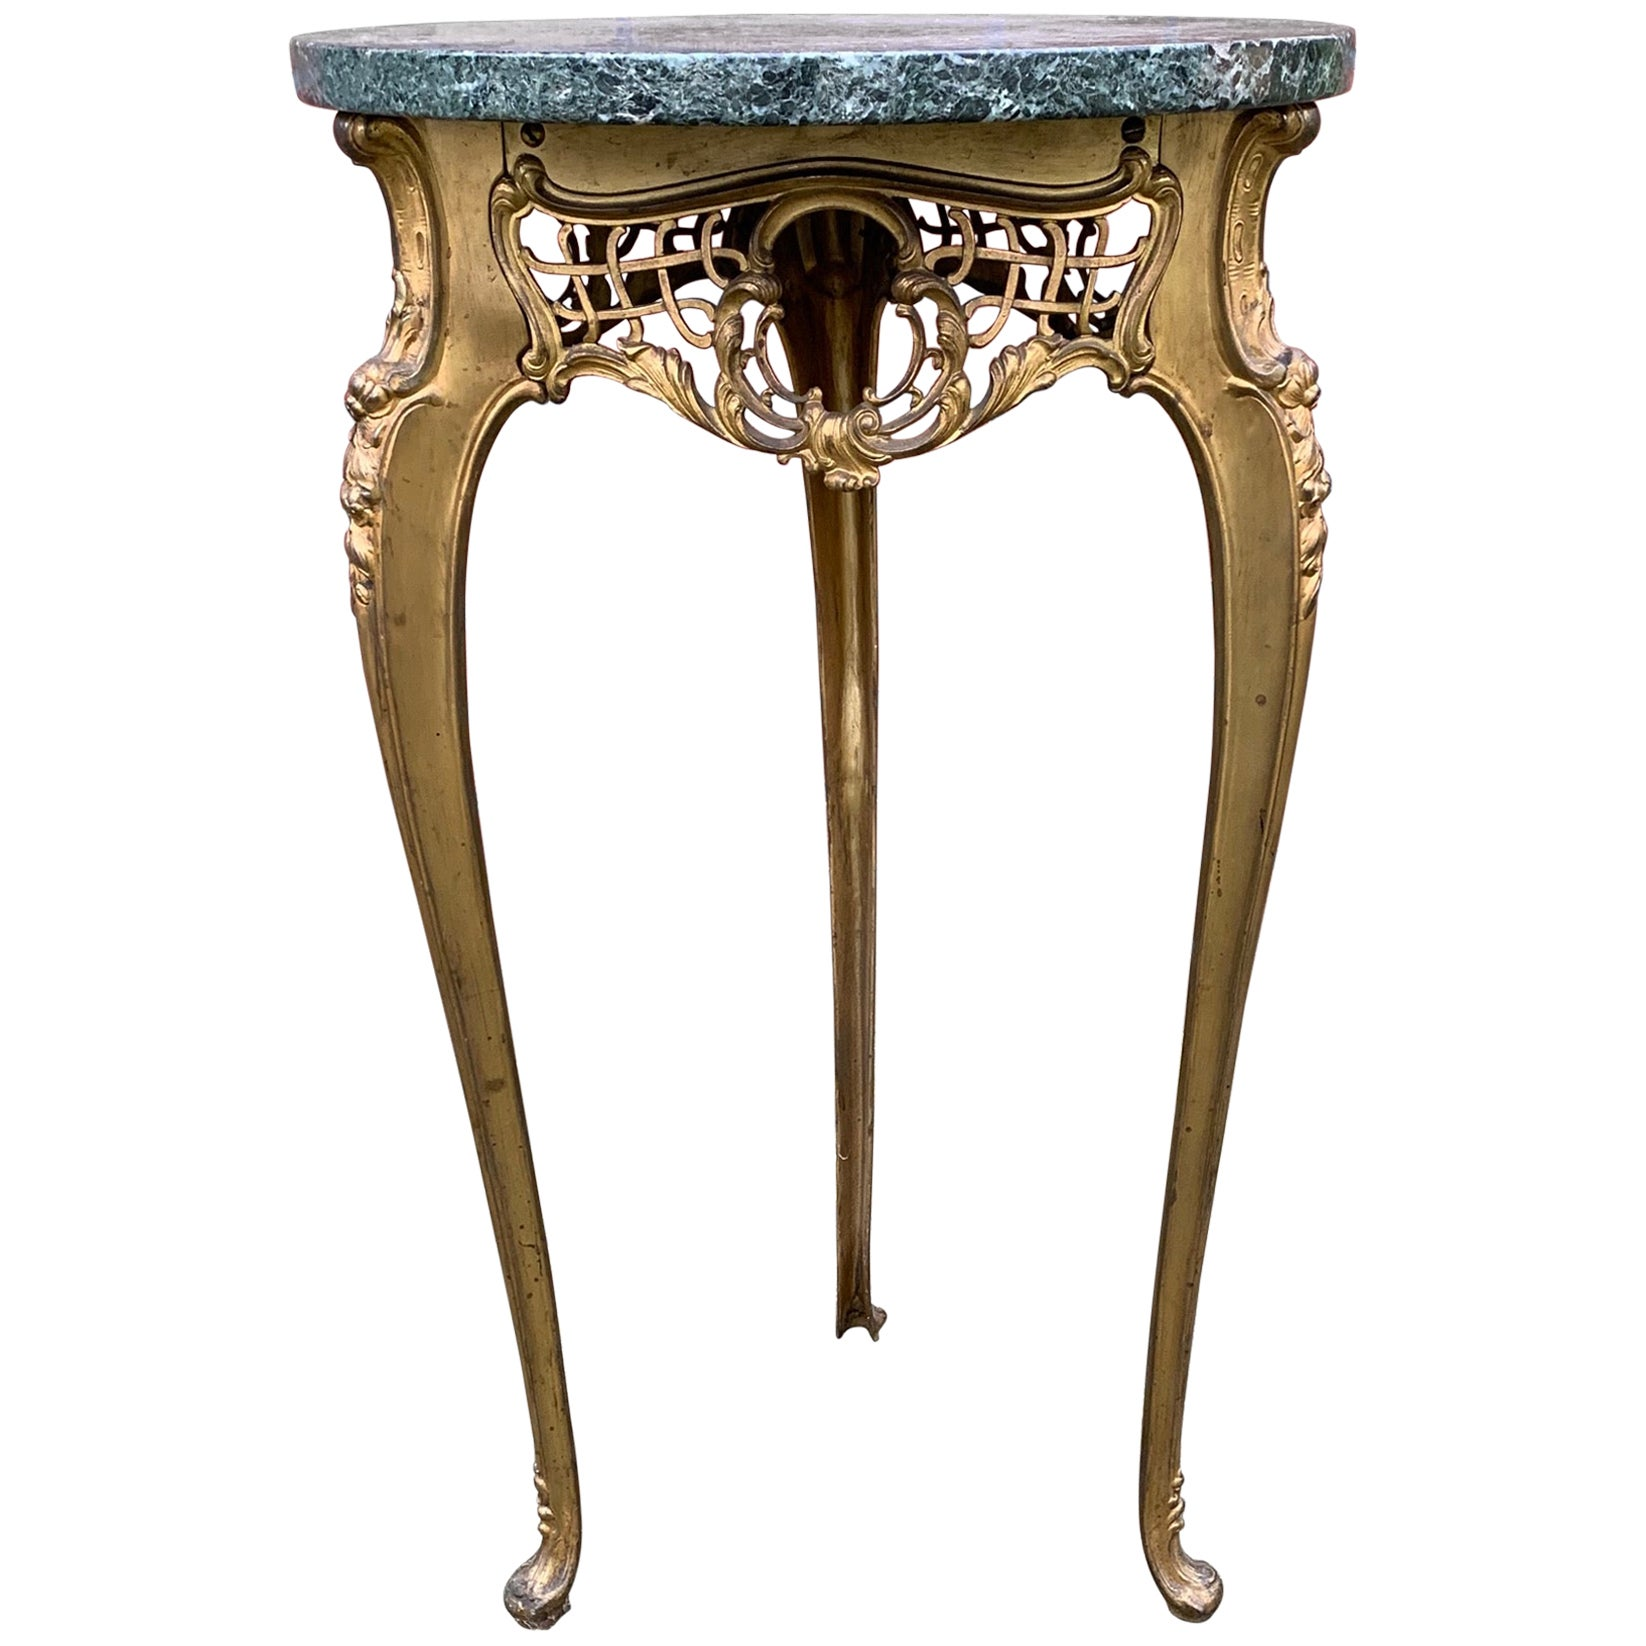 Rare and Handcrafted French Antique Bronze and Marble Top Flower Table, Stand